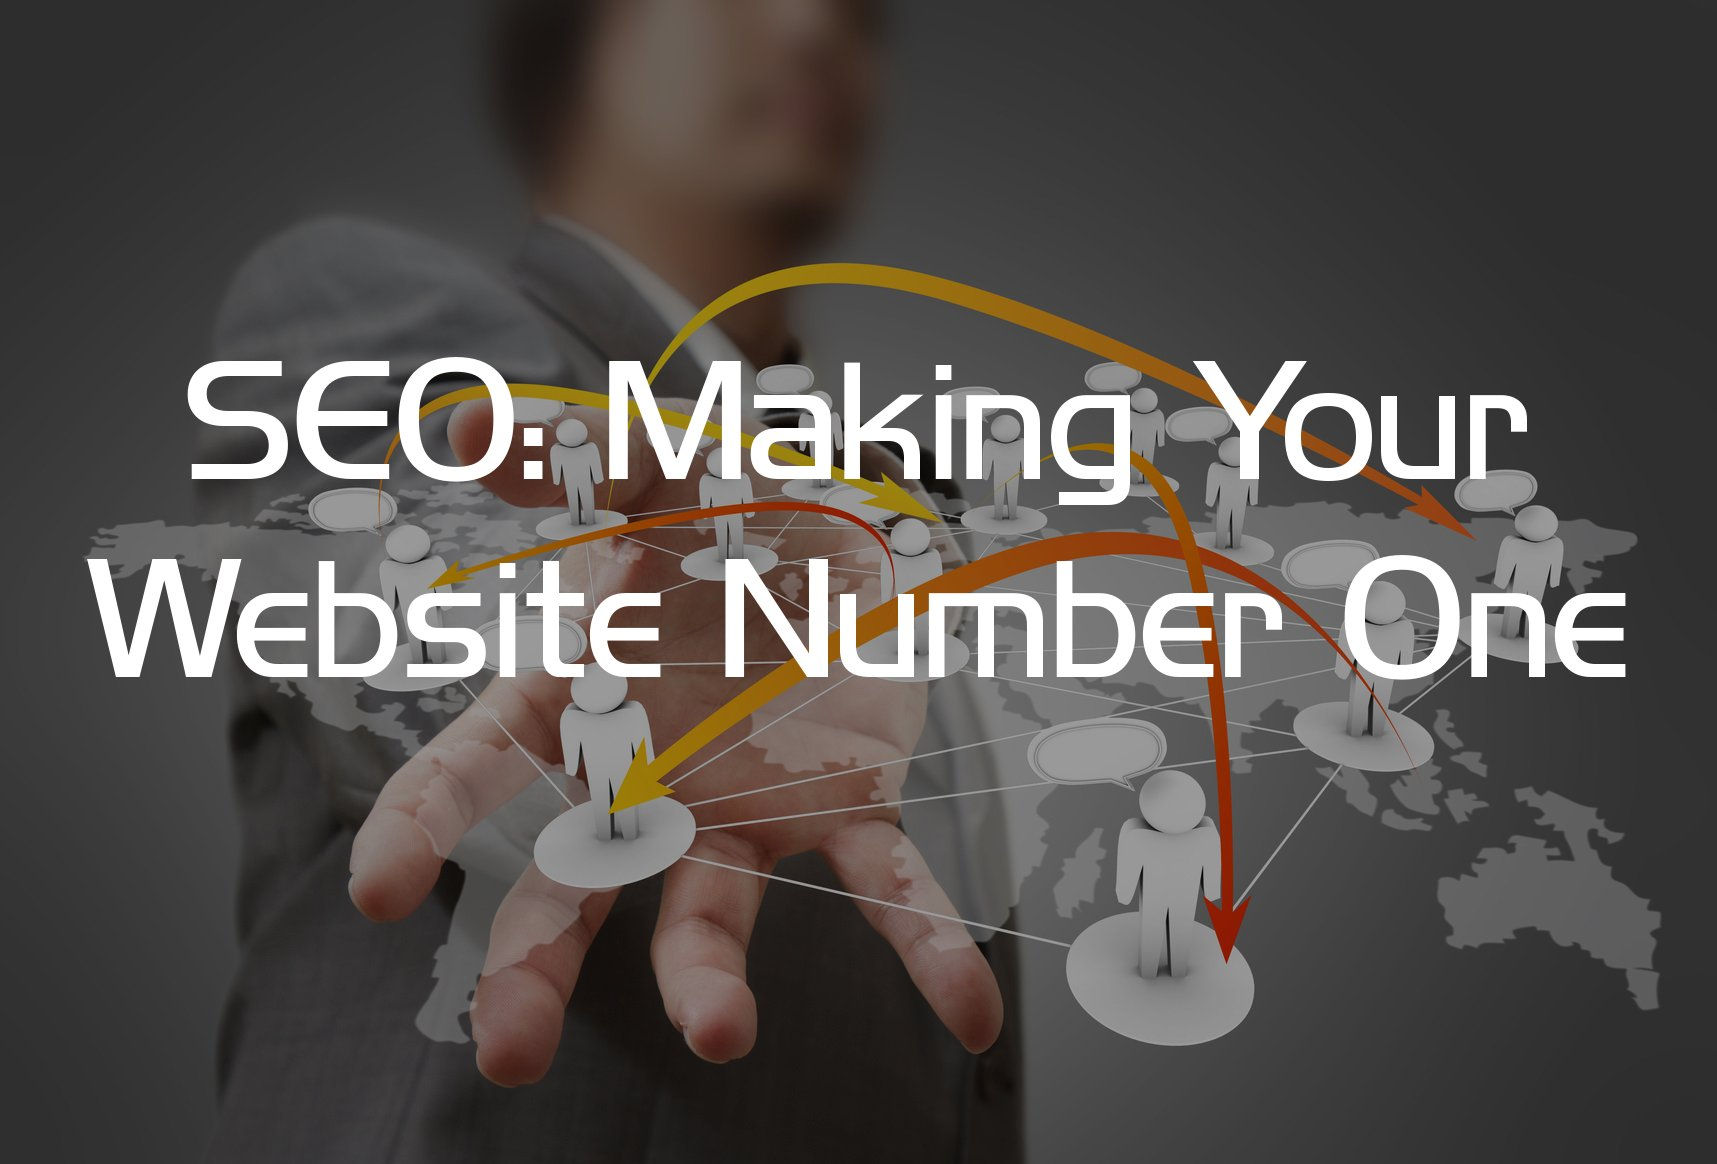 SEO: Making Your Website Number One